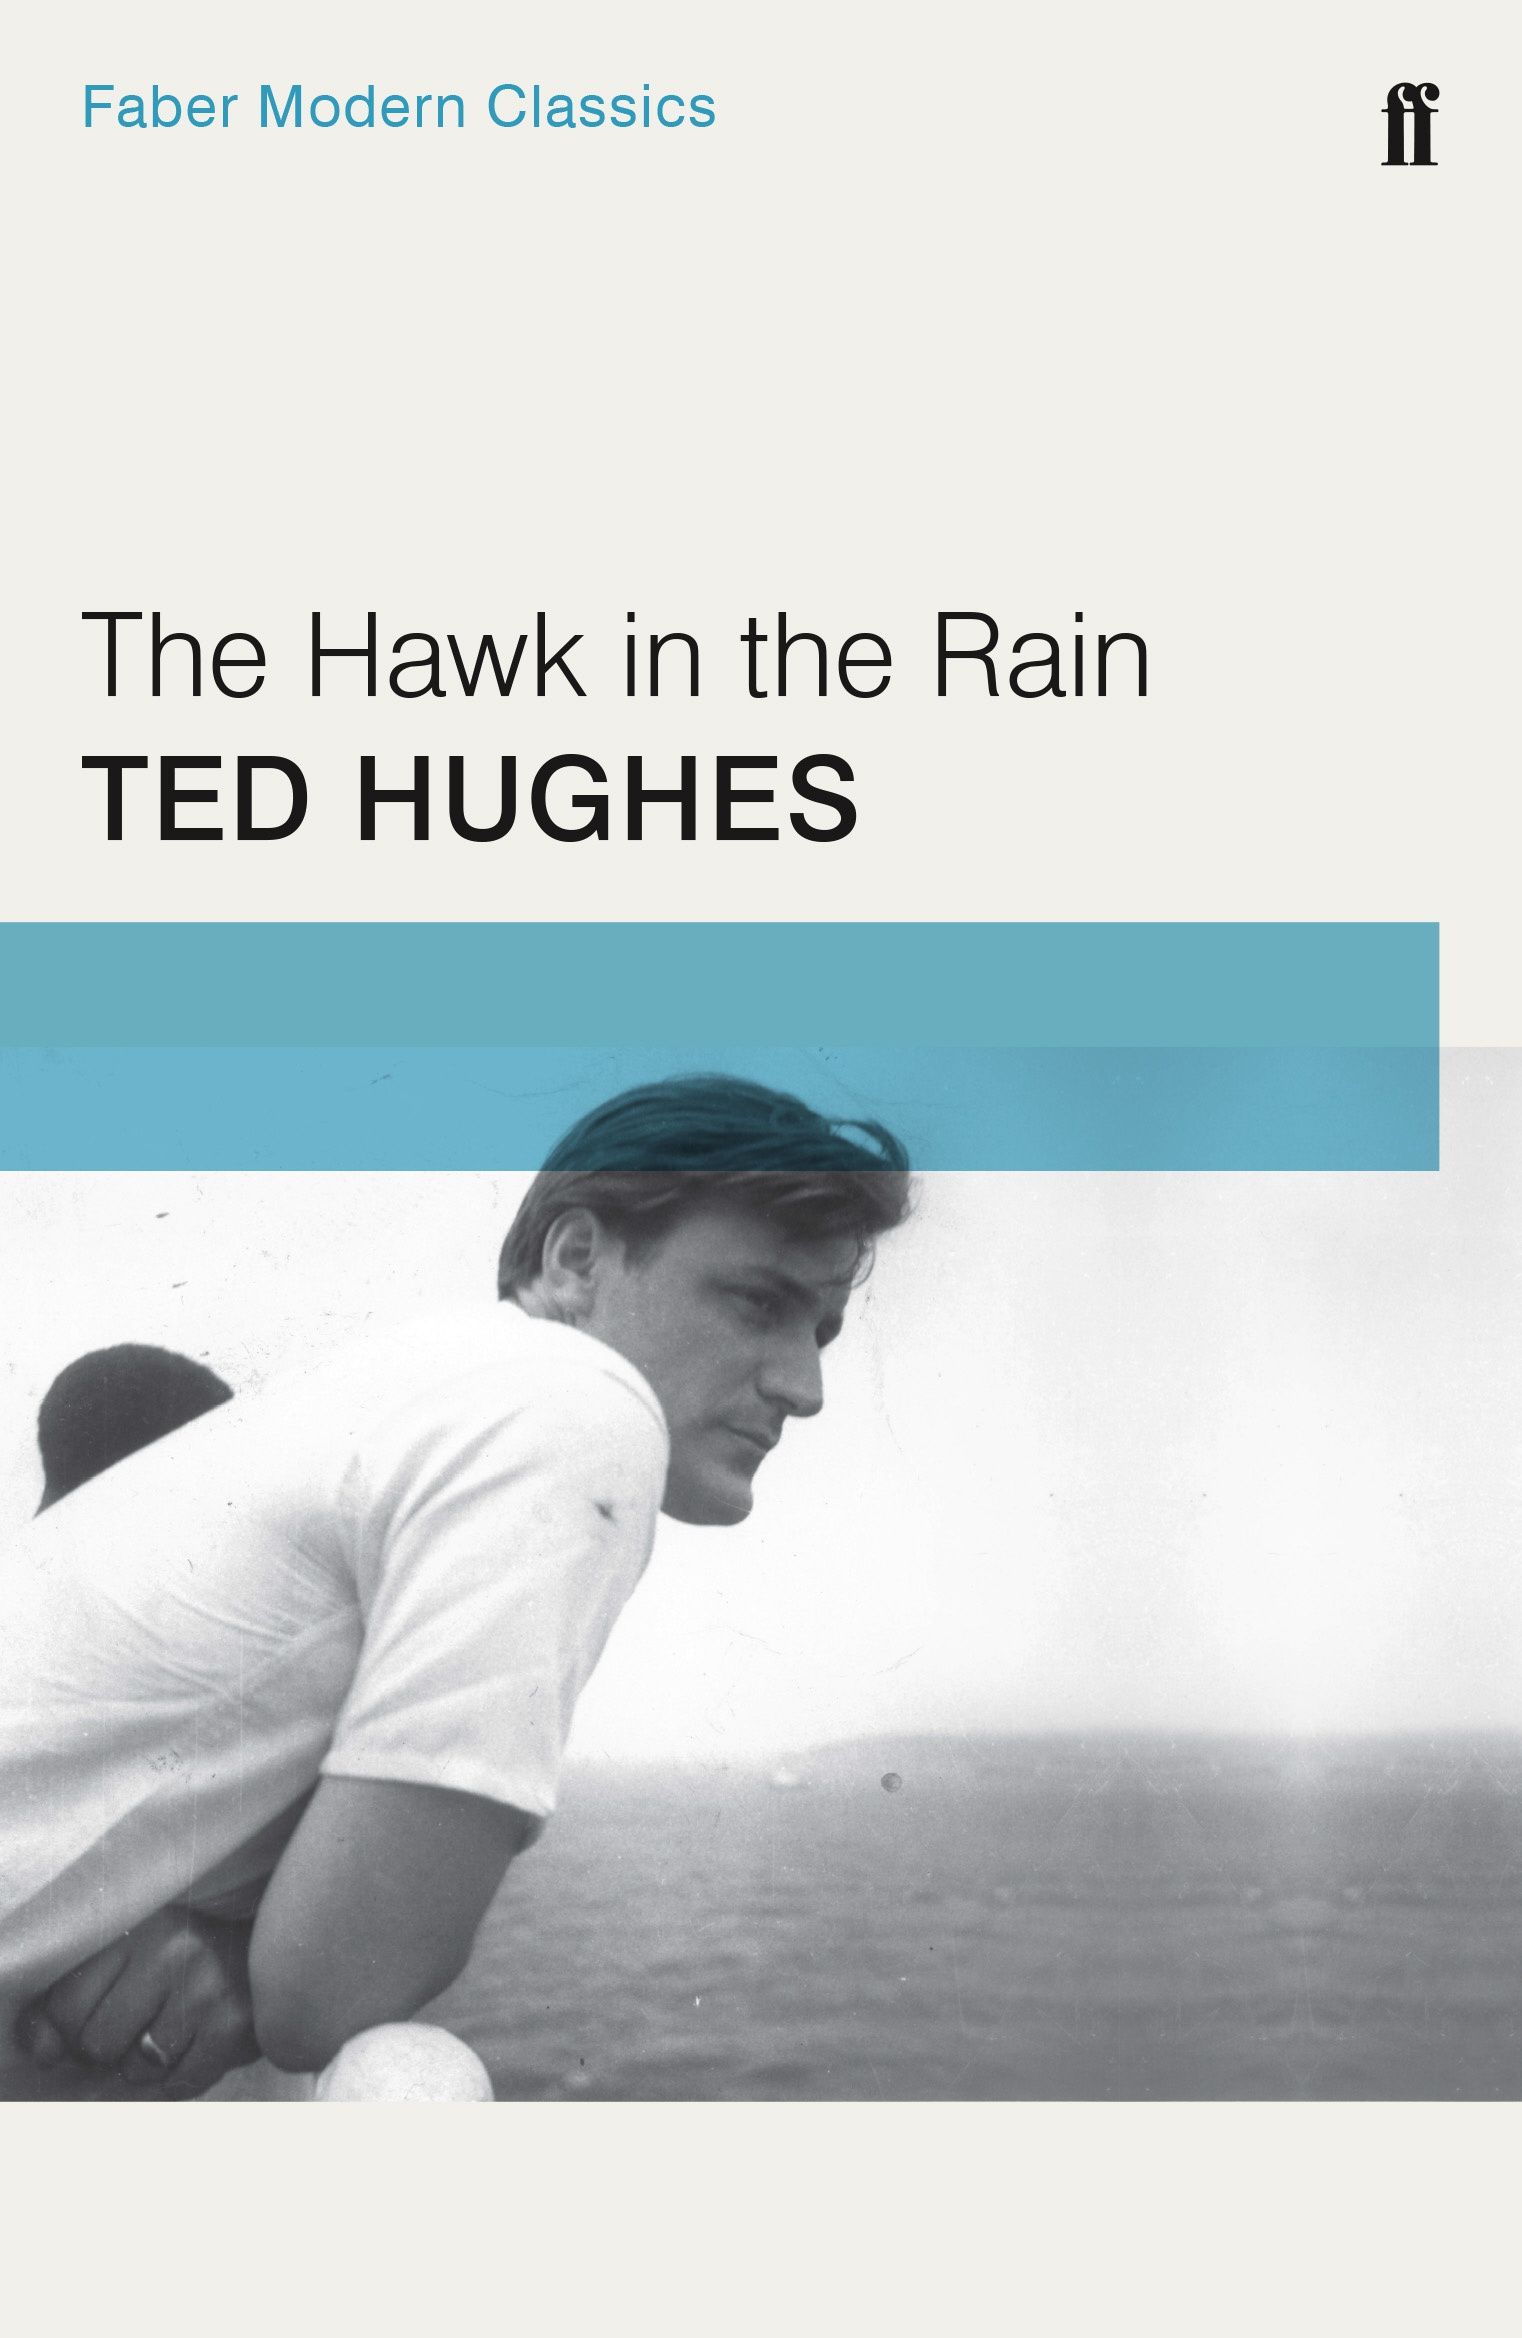 themes of tedhughes poetry Ted hughes wrote poetry in which he explored the natural world and mythical themes.